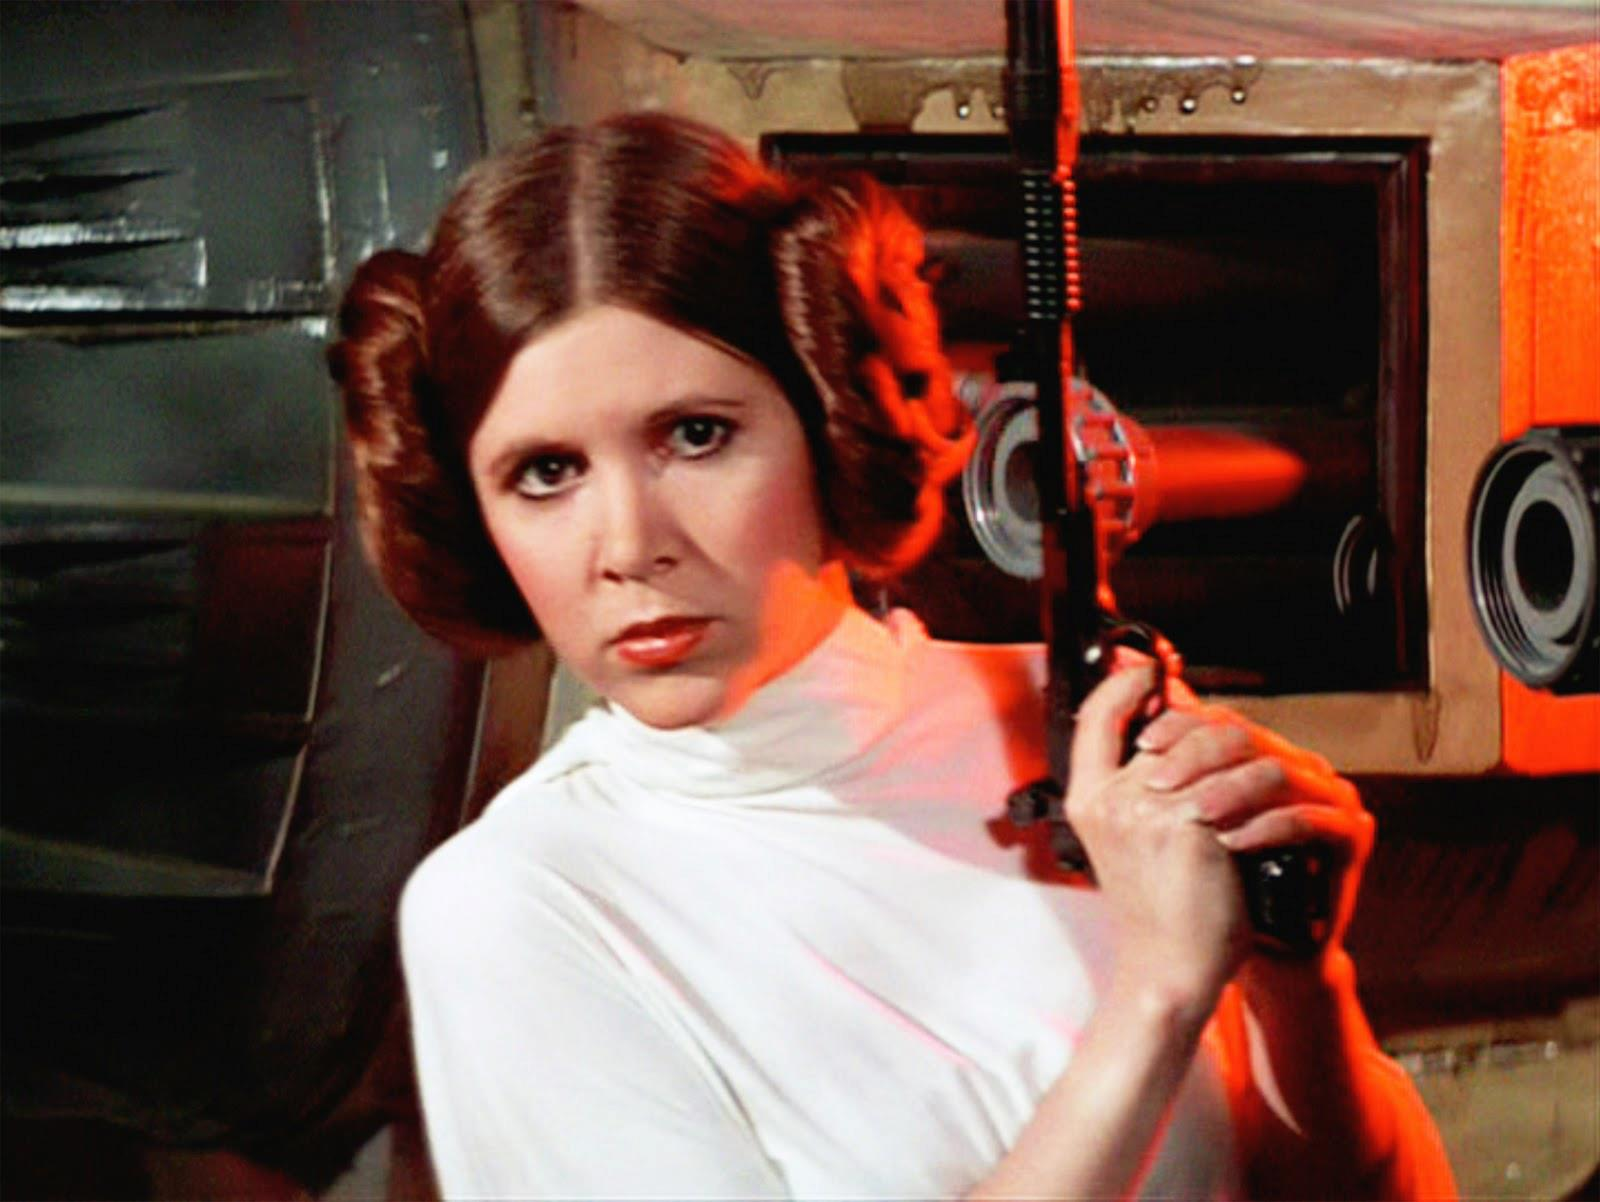 'Star Wars' actress Carrie Fisher dead at age 60